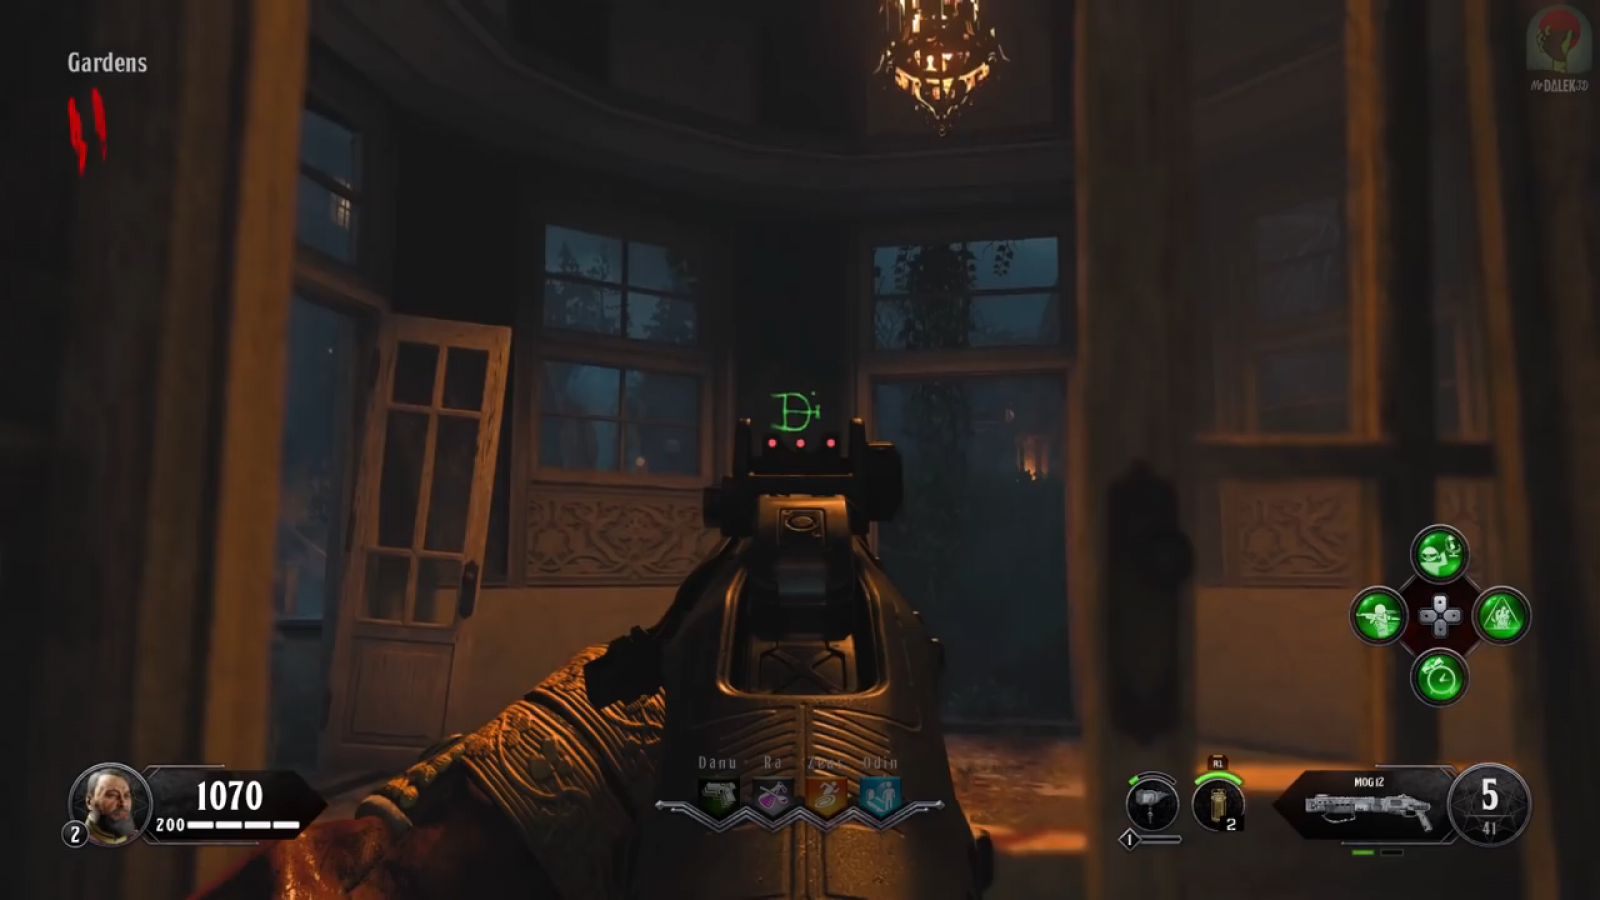 Call of Duty: Black Ops 4' Dead of the Night Pack-a-Punch